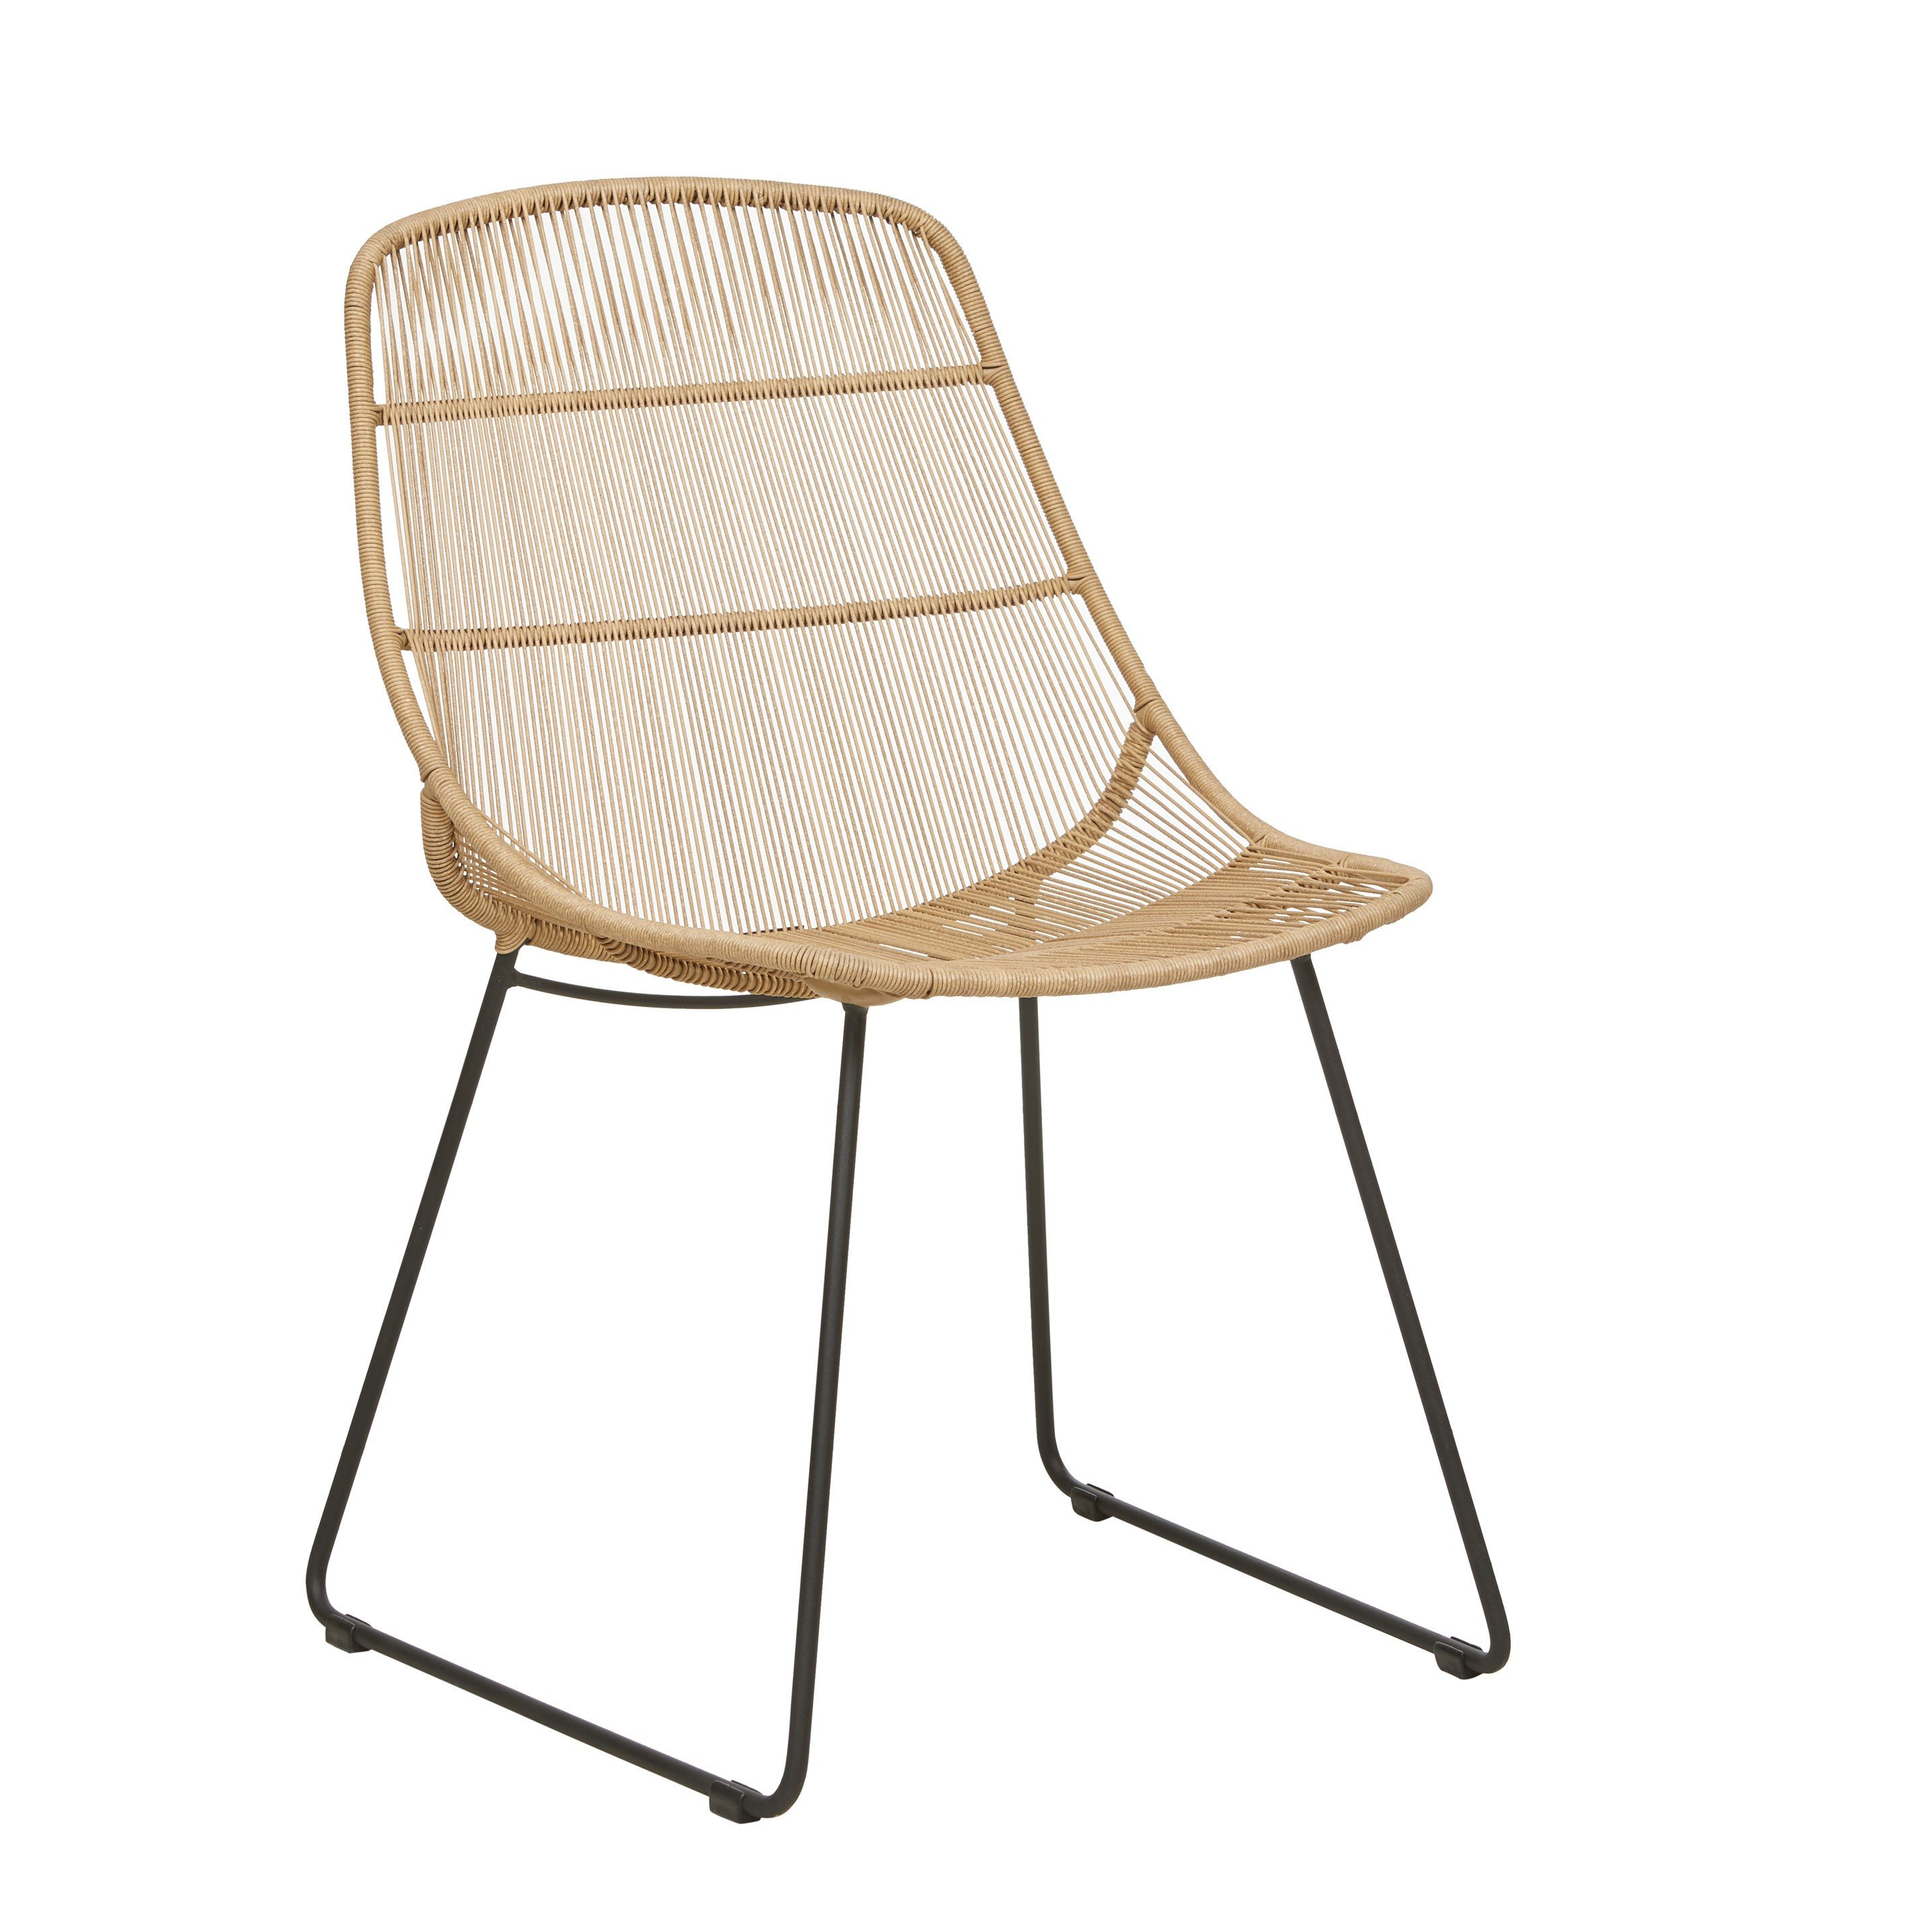 Furniture Hero-Images Dining-Chairs-Benches-and-Stools granada-scoop-01